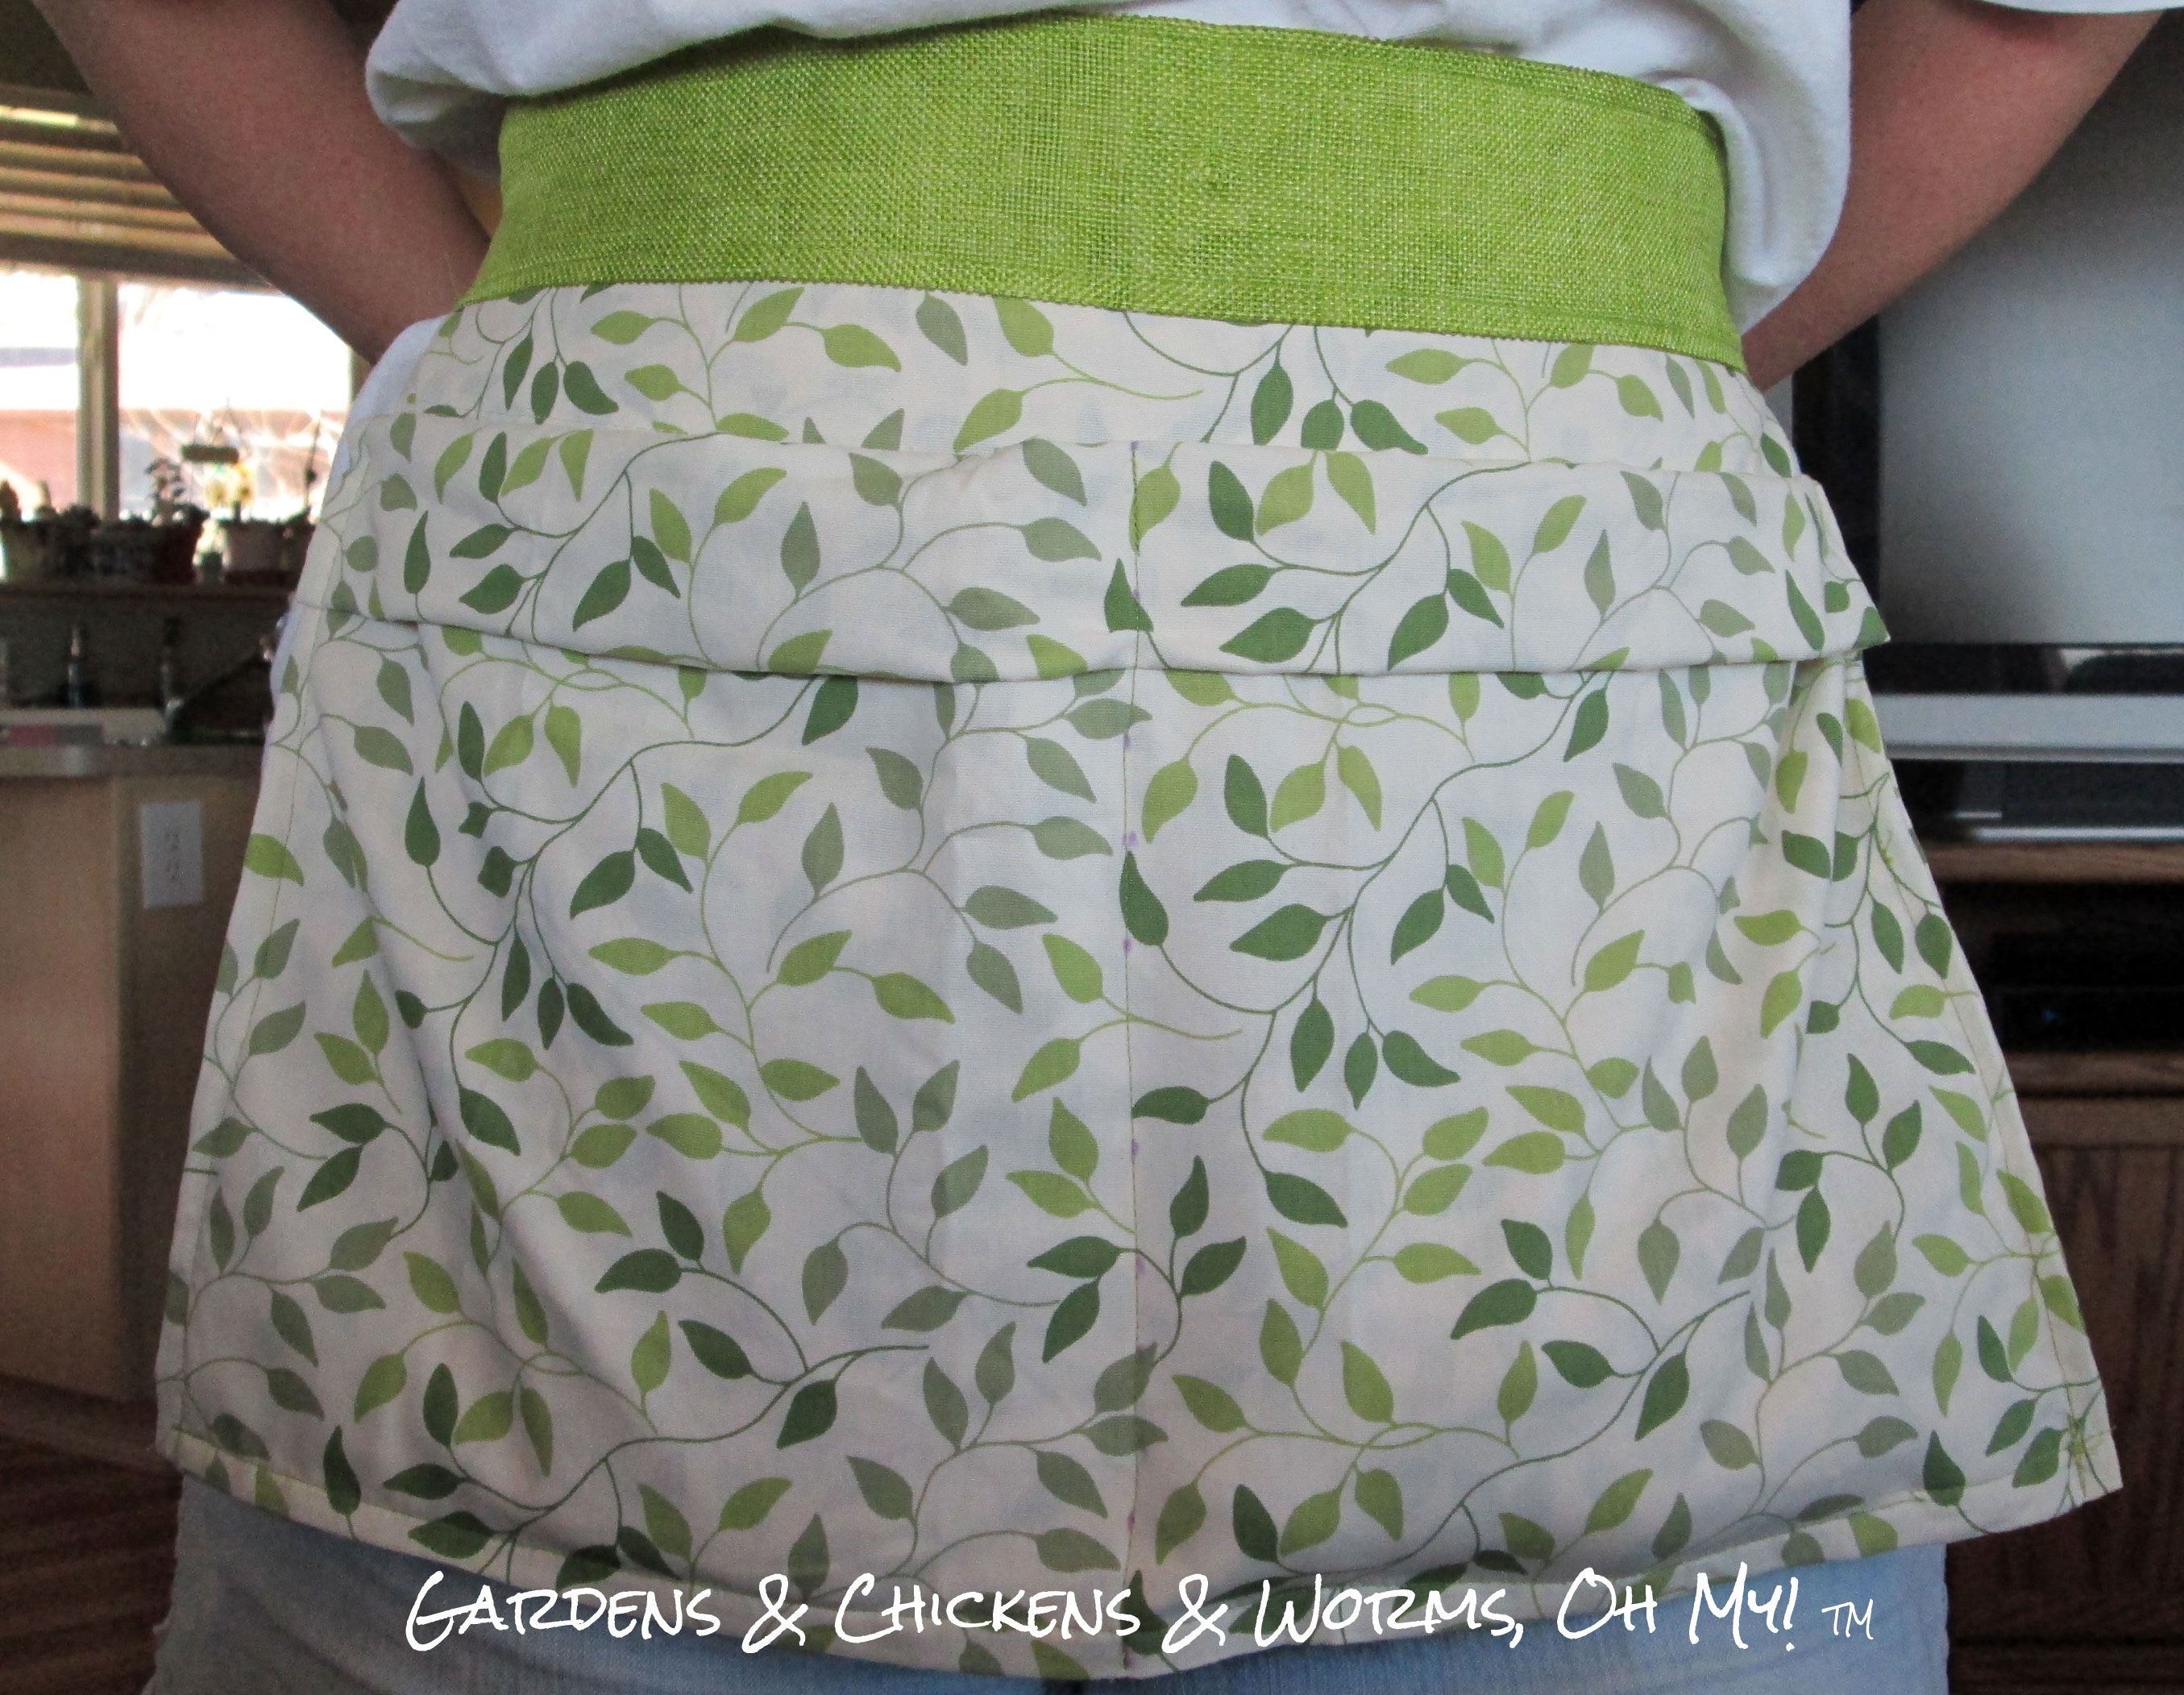 An easy to make egg gathering apron from a pillowcase. ://gardensandchickensandworms & An easy to make egg gathering apron from a pillowcase. http ... pillowsntoast.com